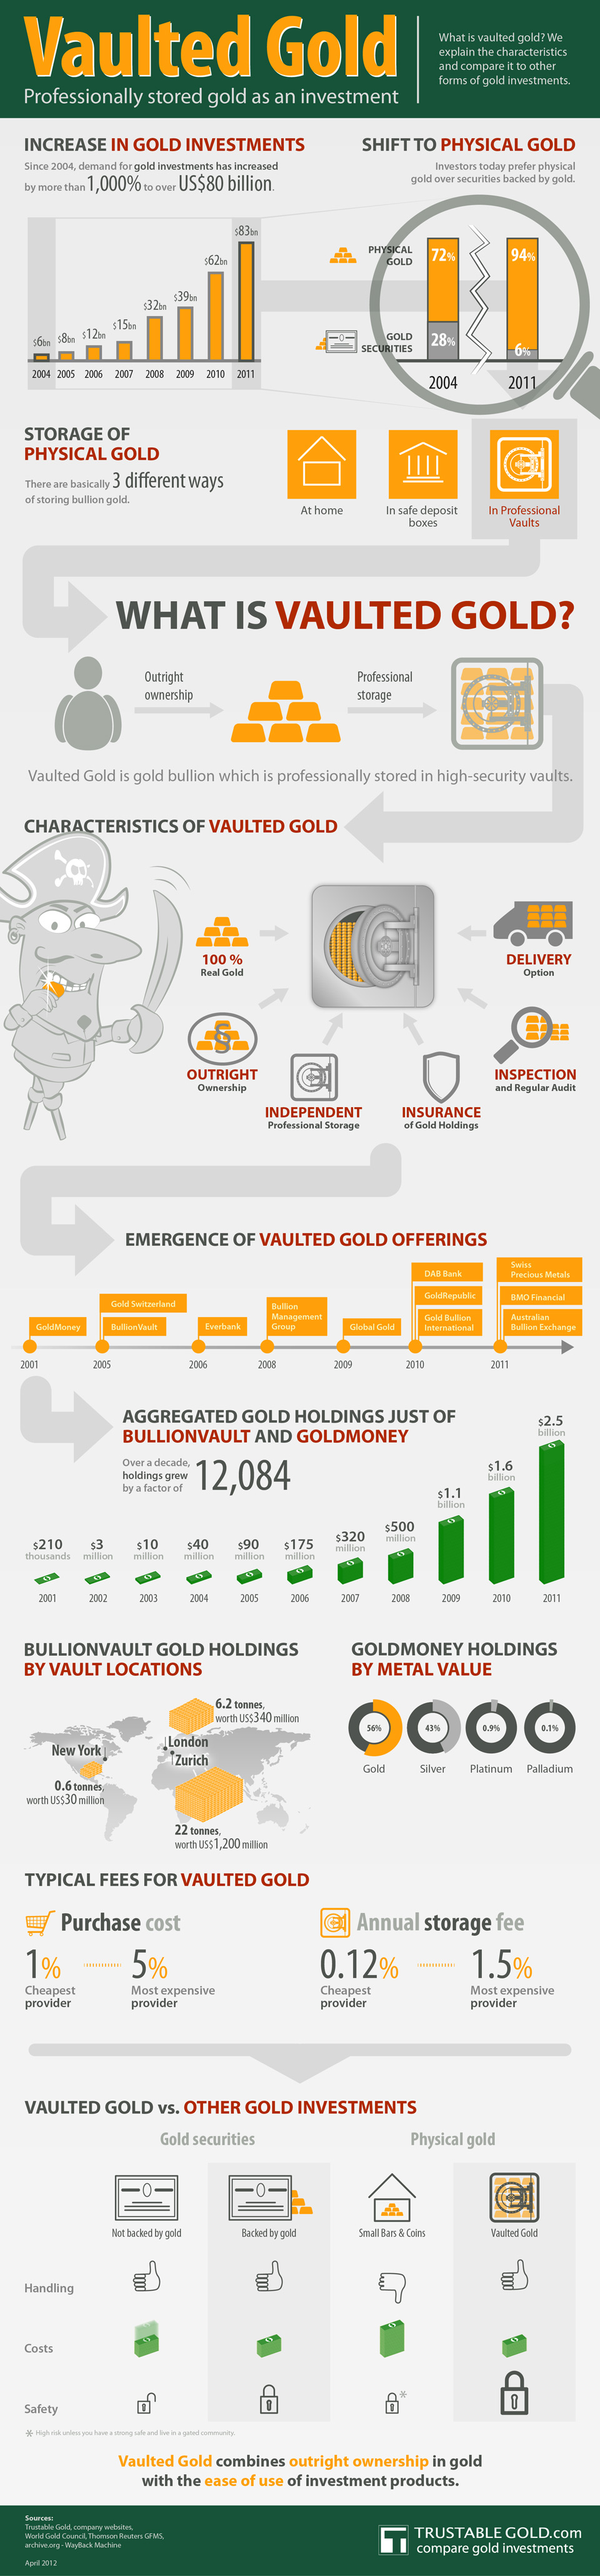 Vaulted Gold Infographic